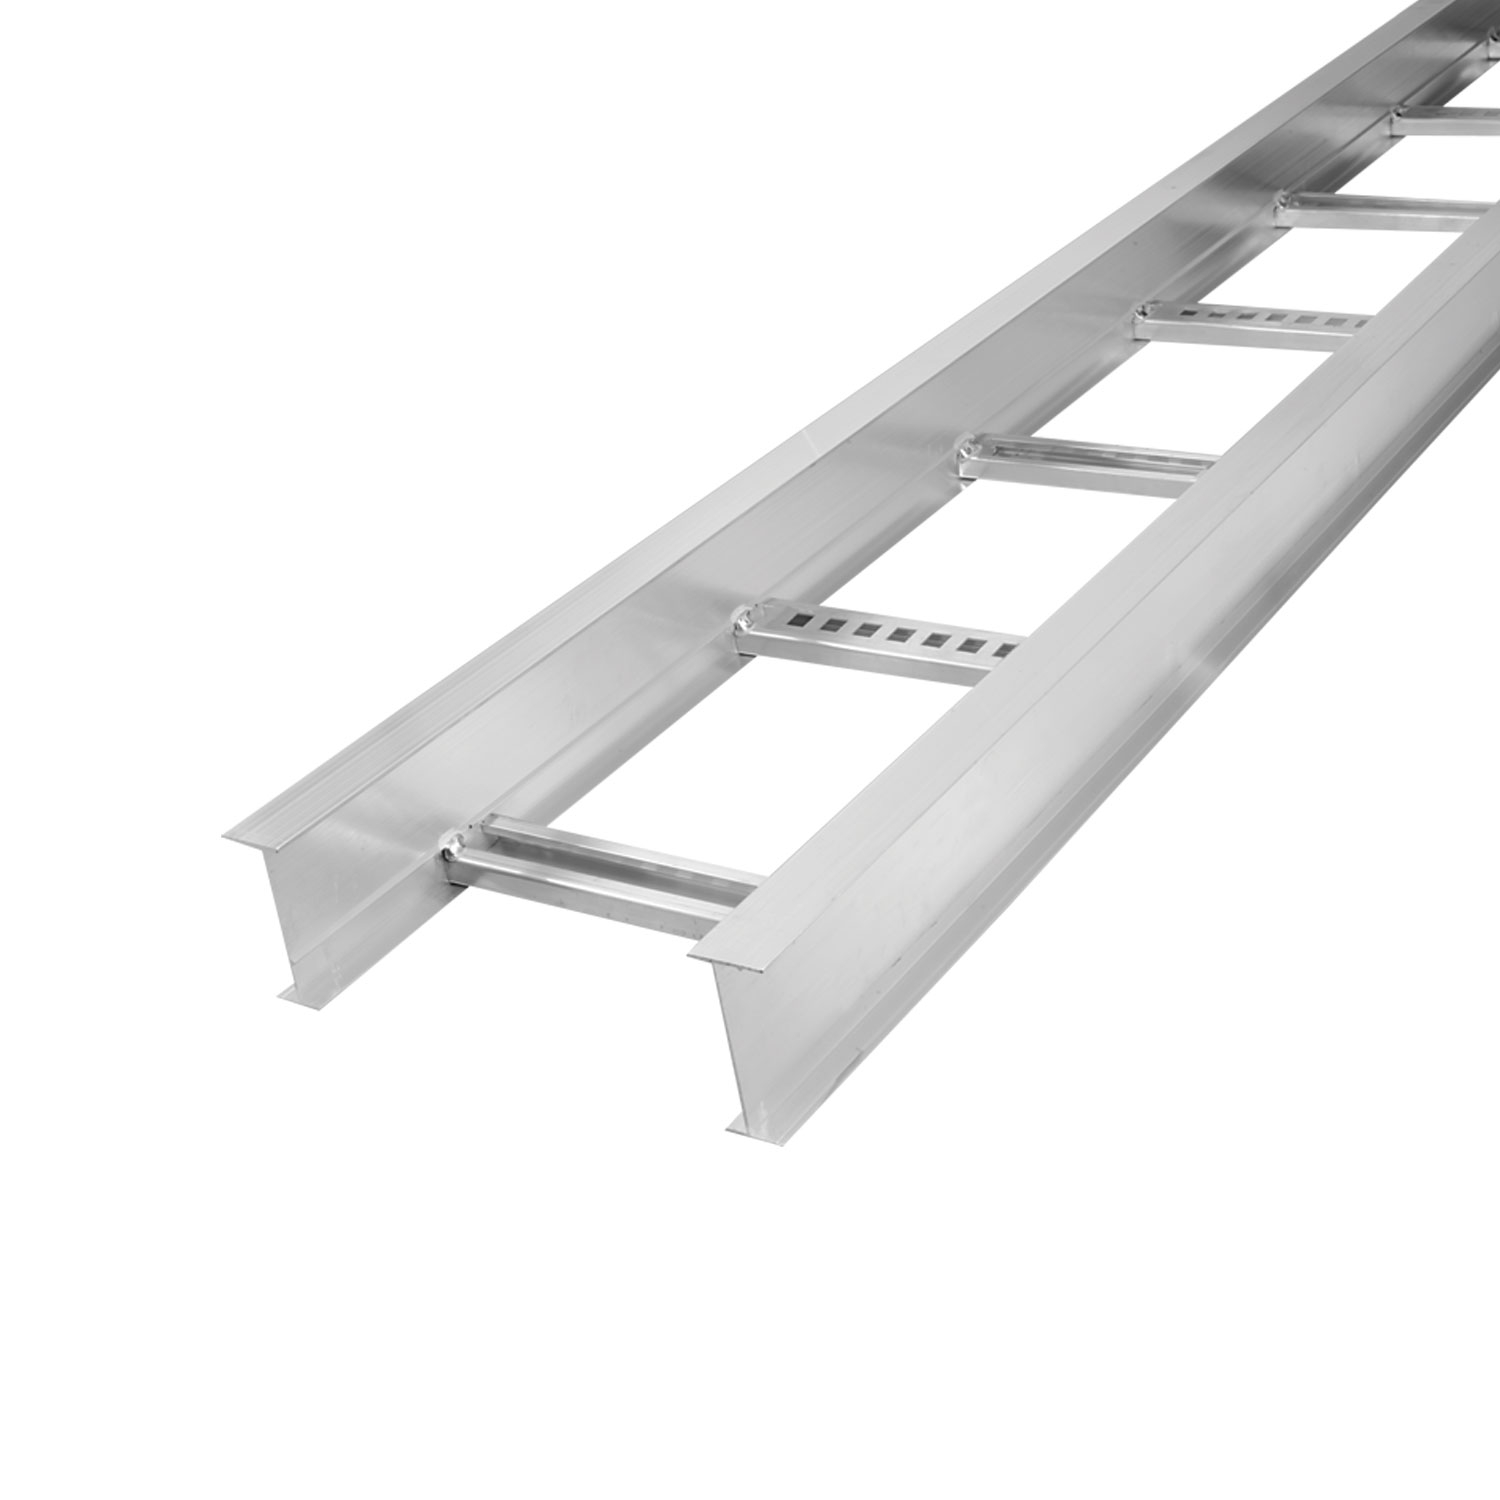 AH3412L09144 T&B CABLE TRAY